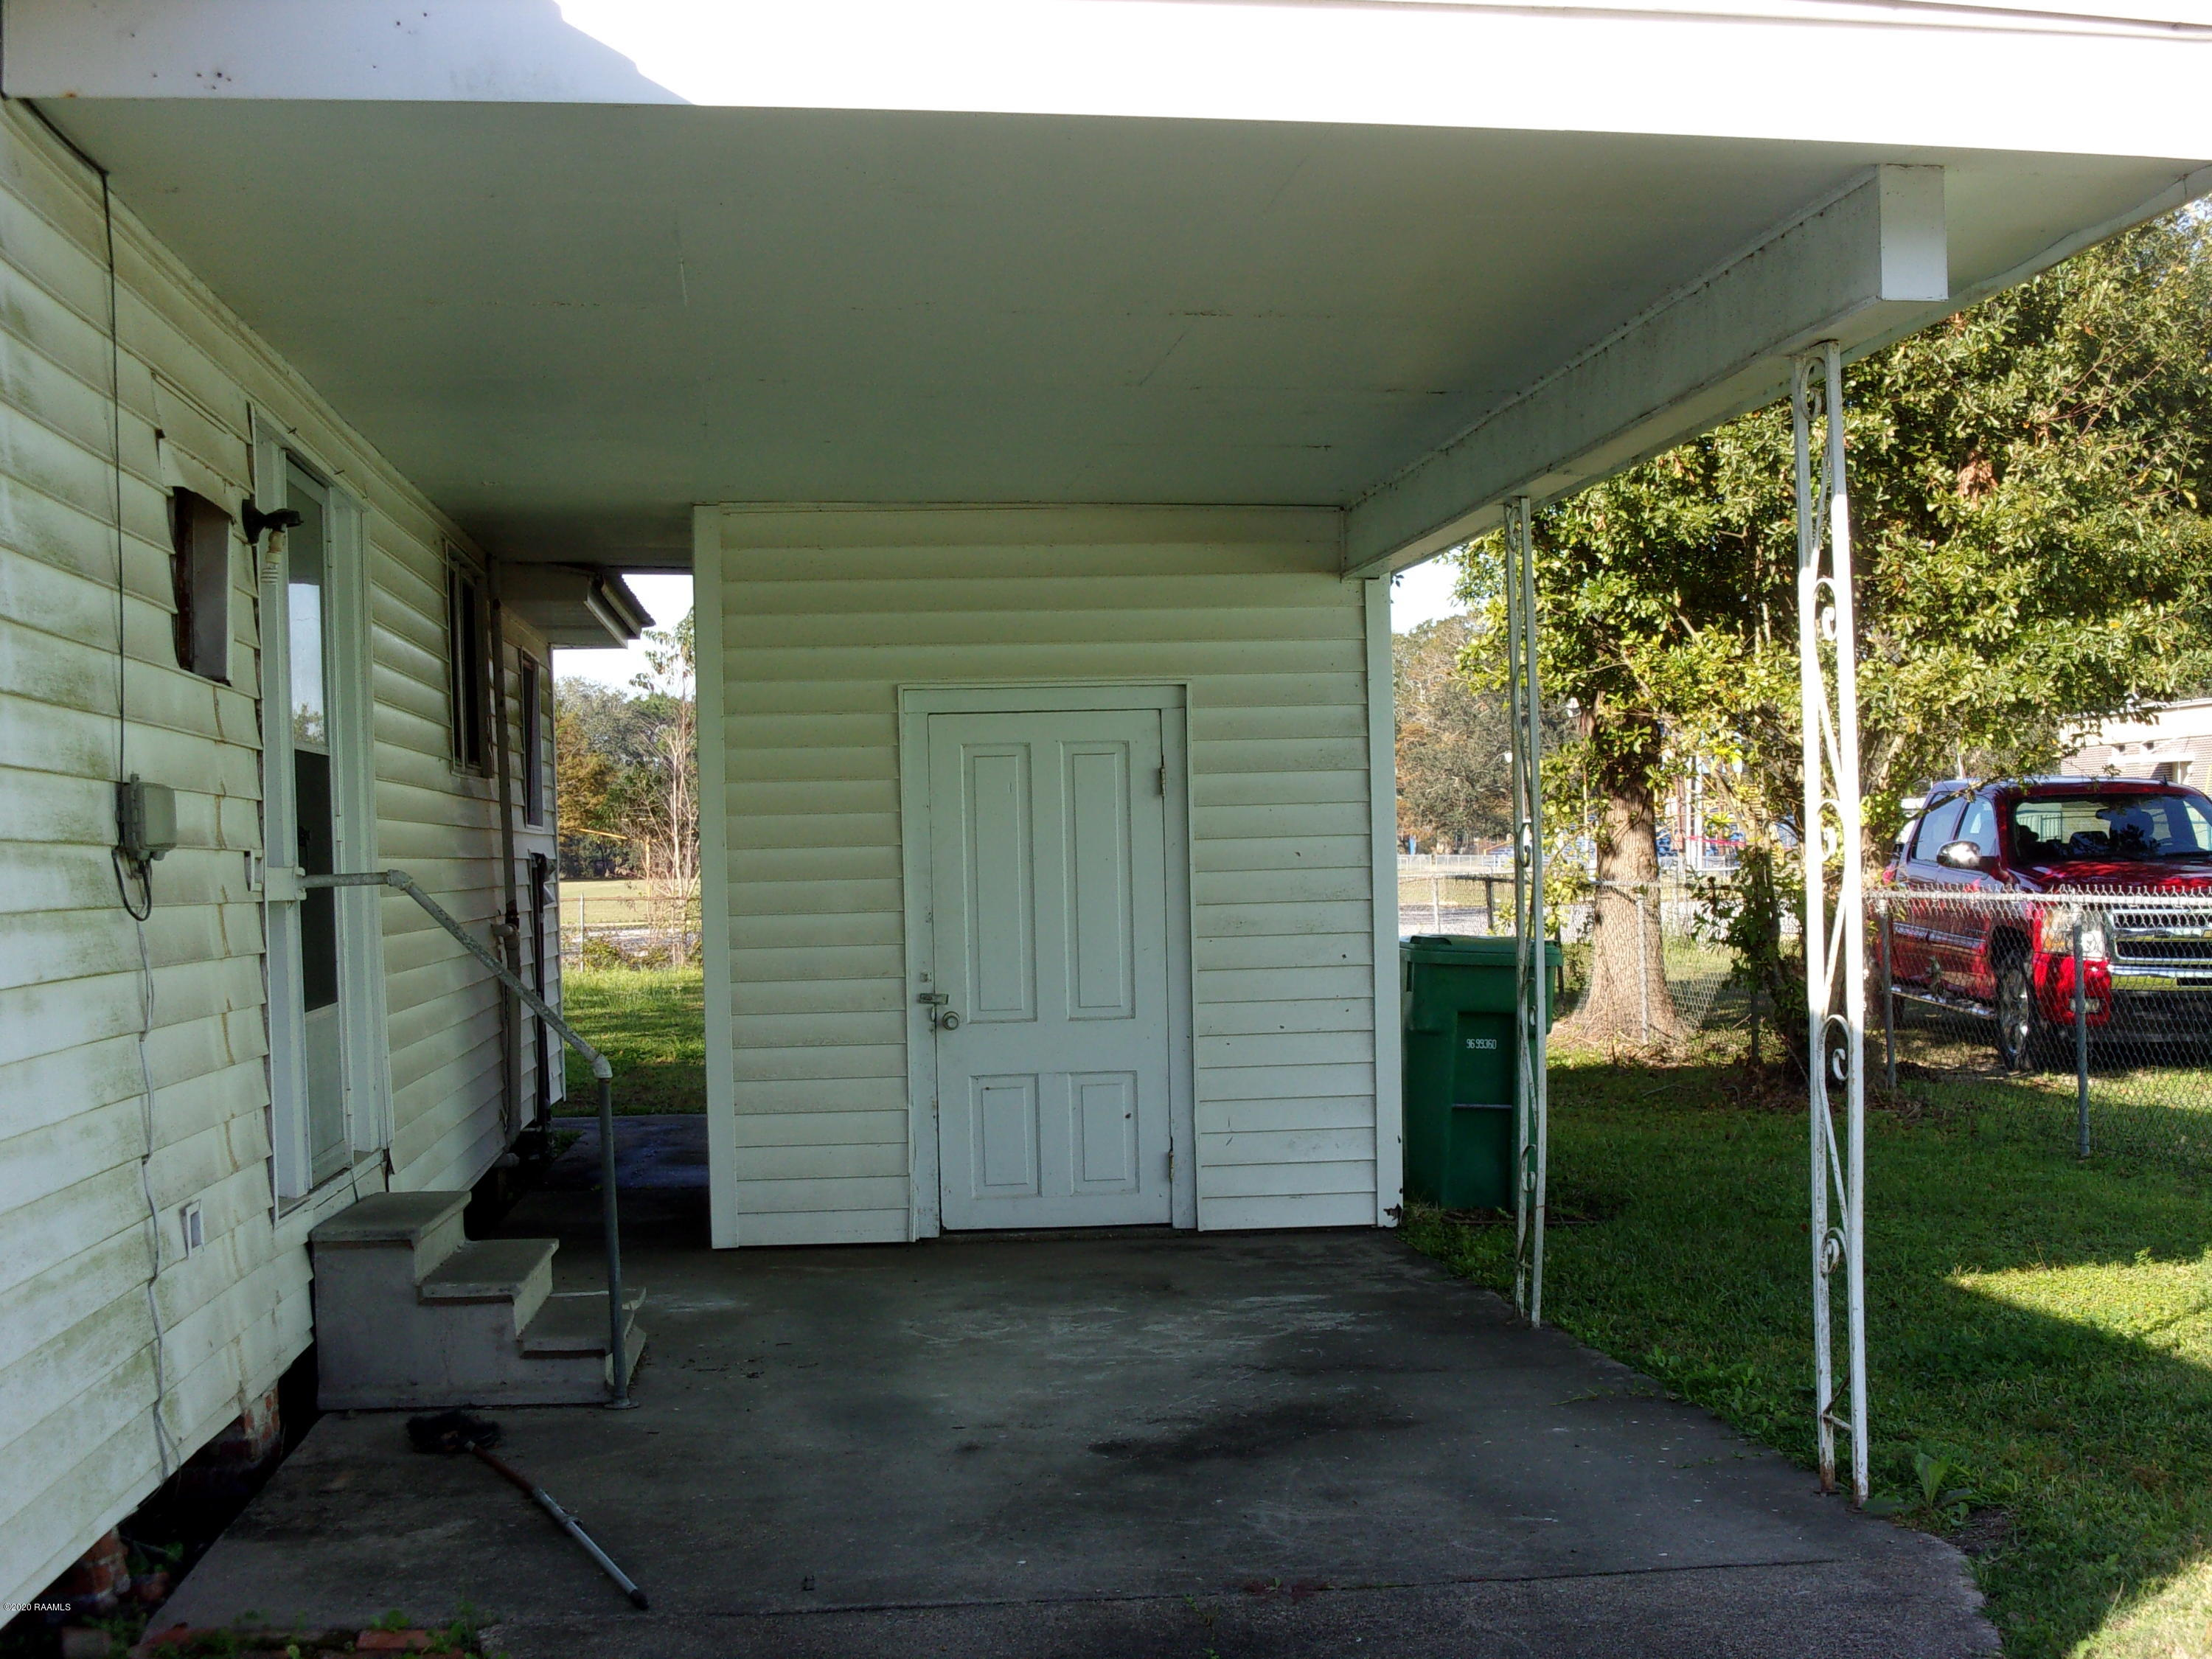 809 Anderson Street, Franklin, LA 70538 Photo #3